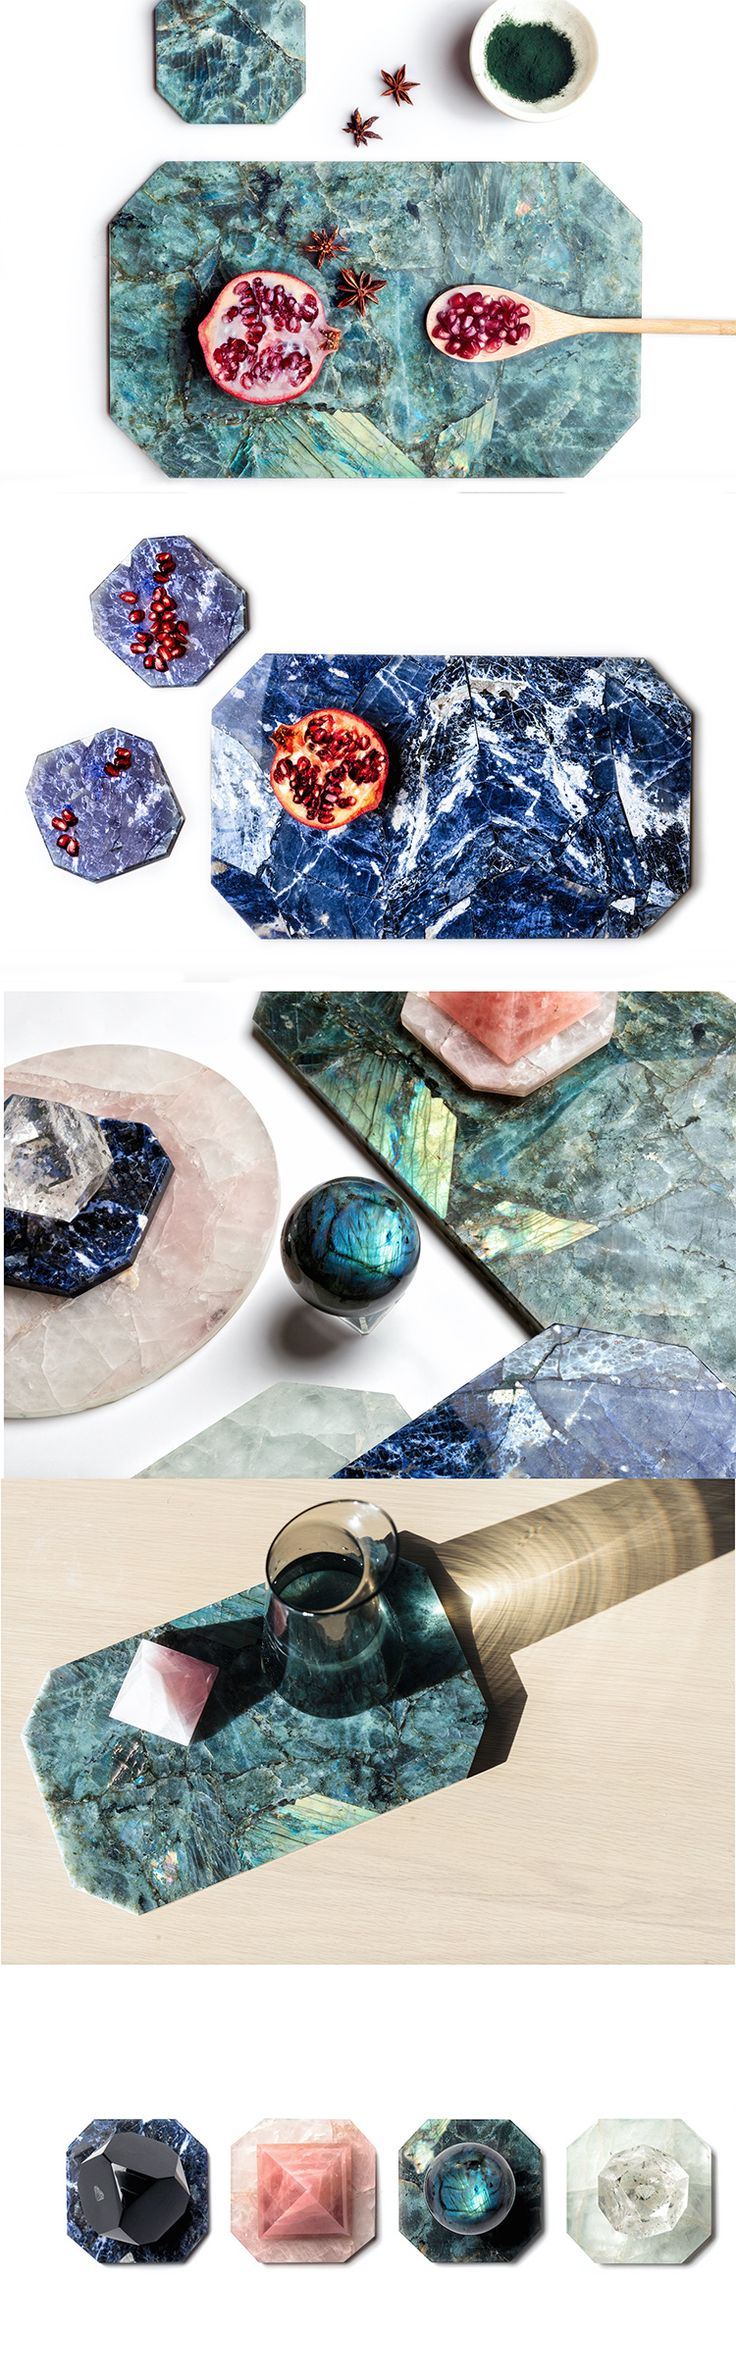 Crystal platters, coasters, trivets, balls https://shop.thecoolhunter.net/product-category/homewares/